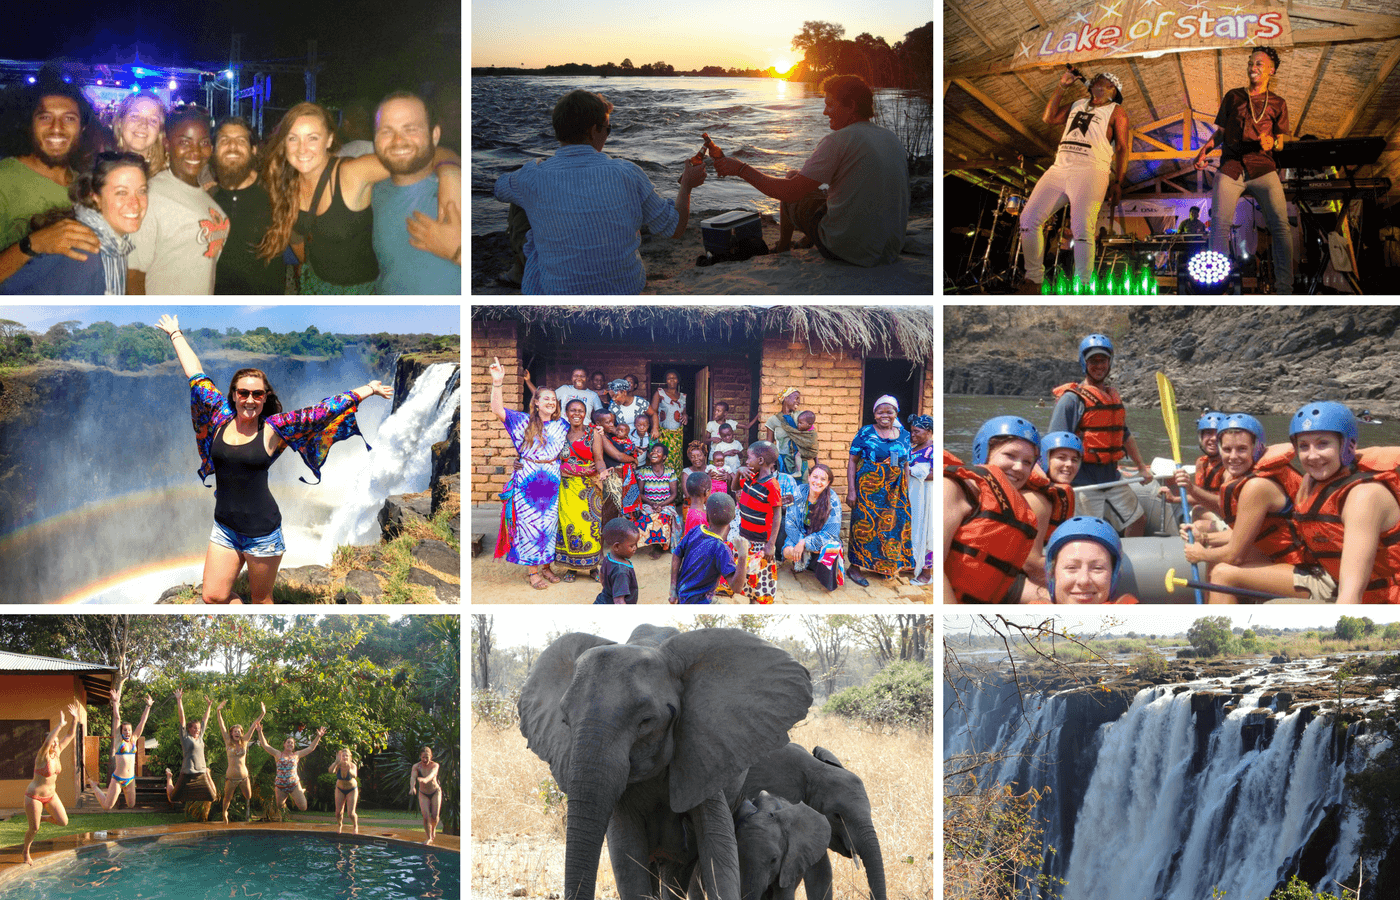 Lake of Stars, Zambia, Malawi & Botswana Festival Adventure